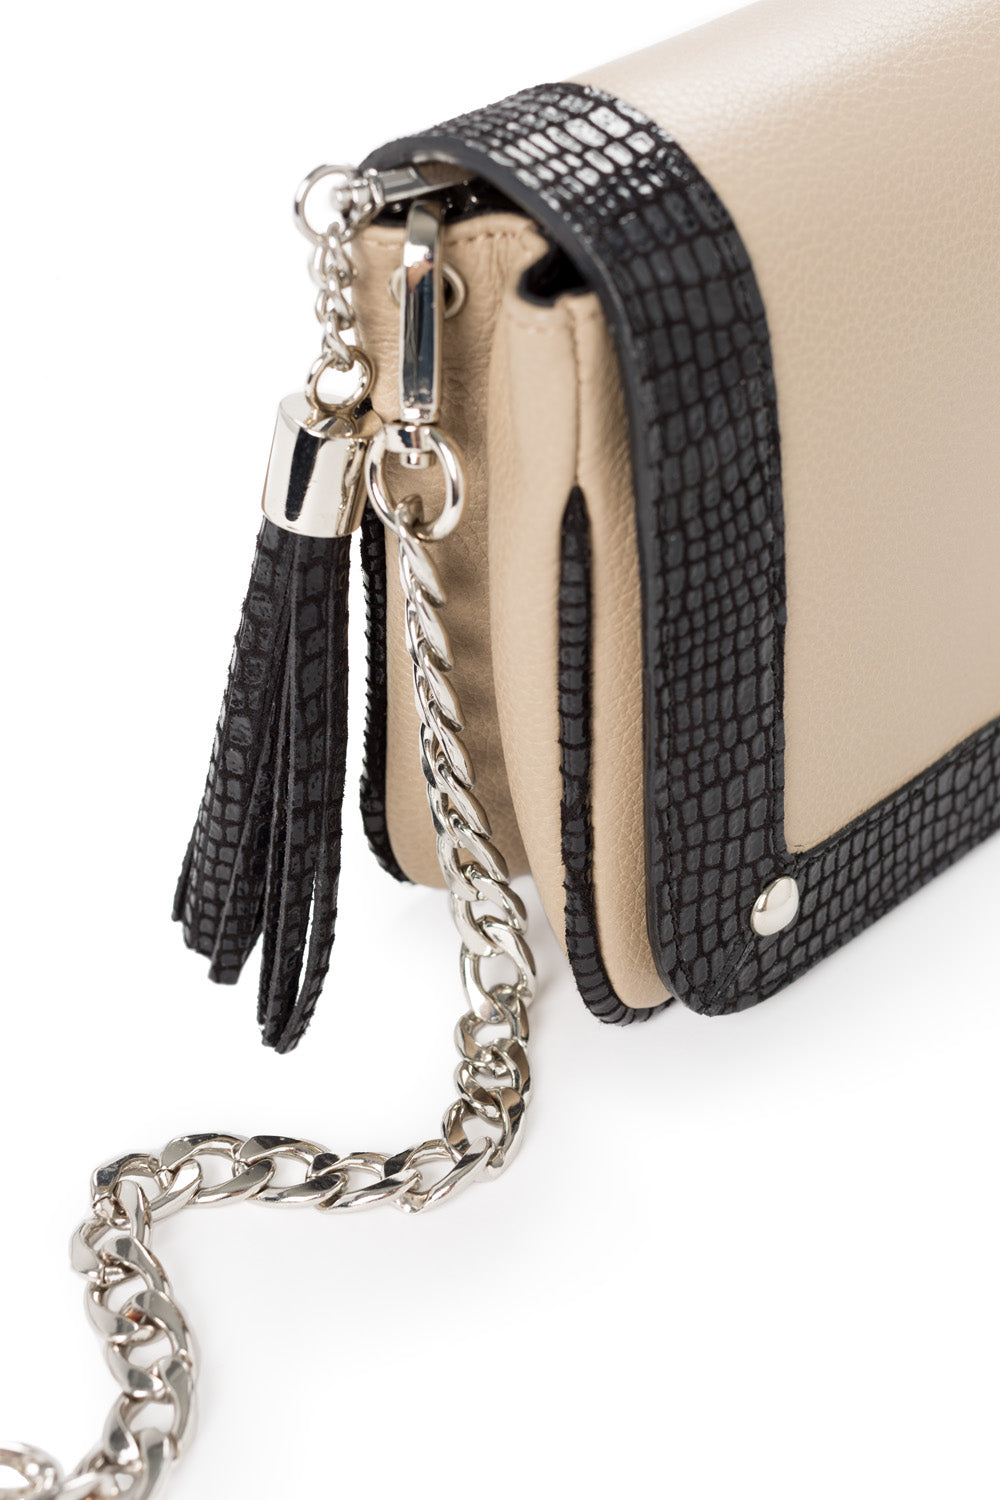 'Amber' Small Shoulder Bag in Taupe And Black Leather | Mel Boteri | Detail View